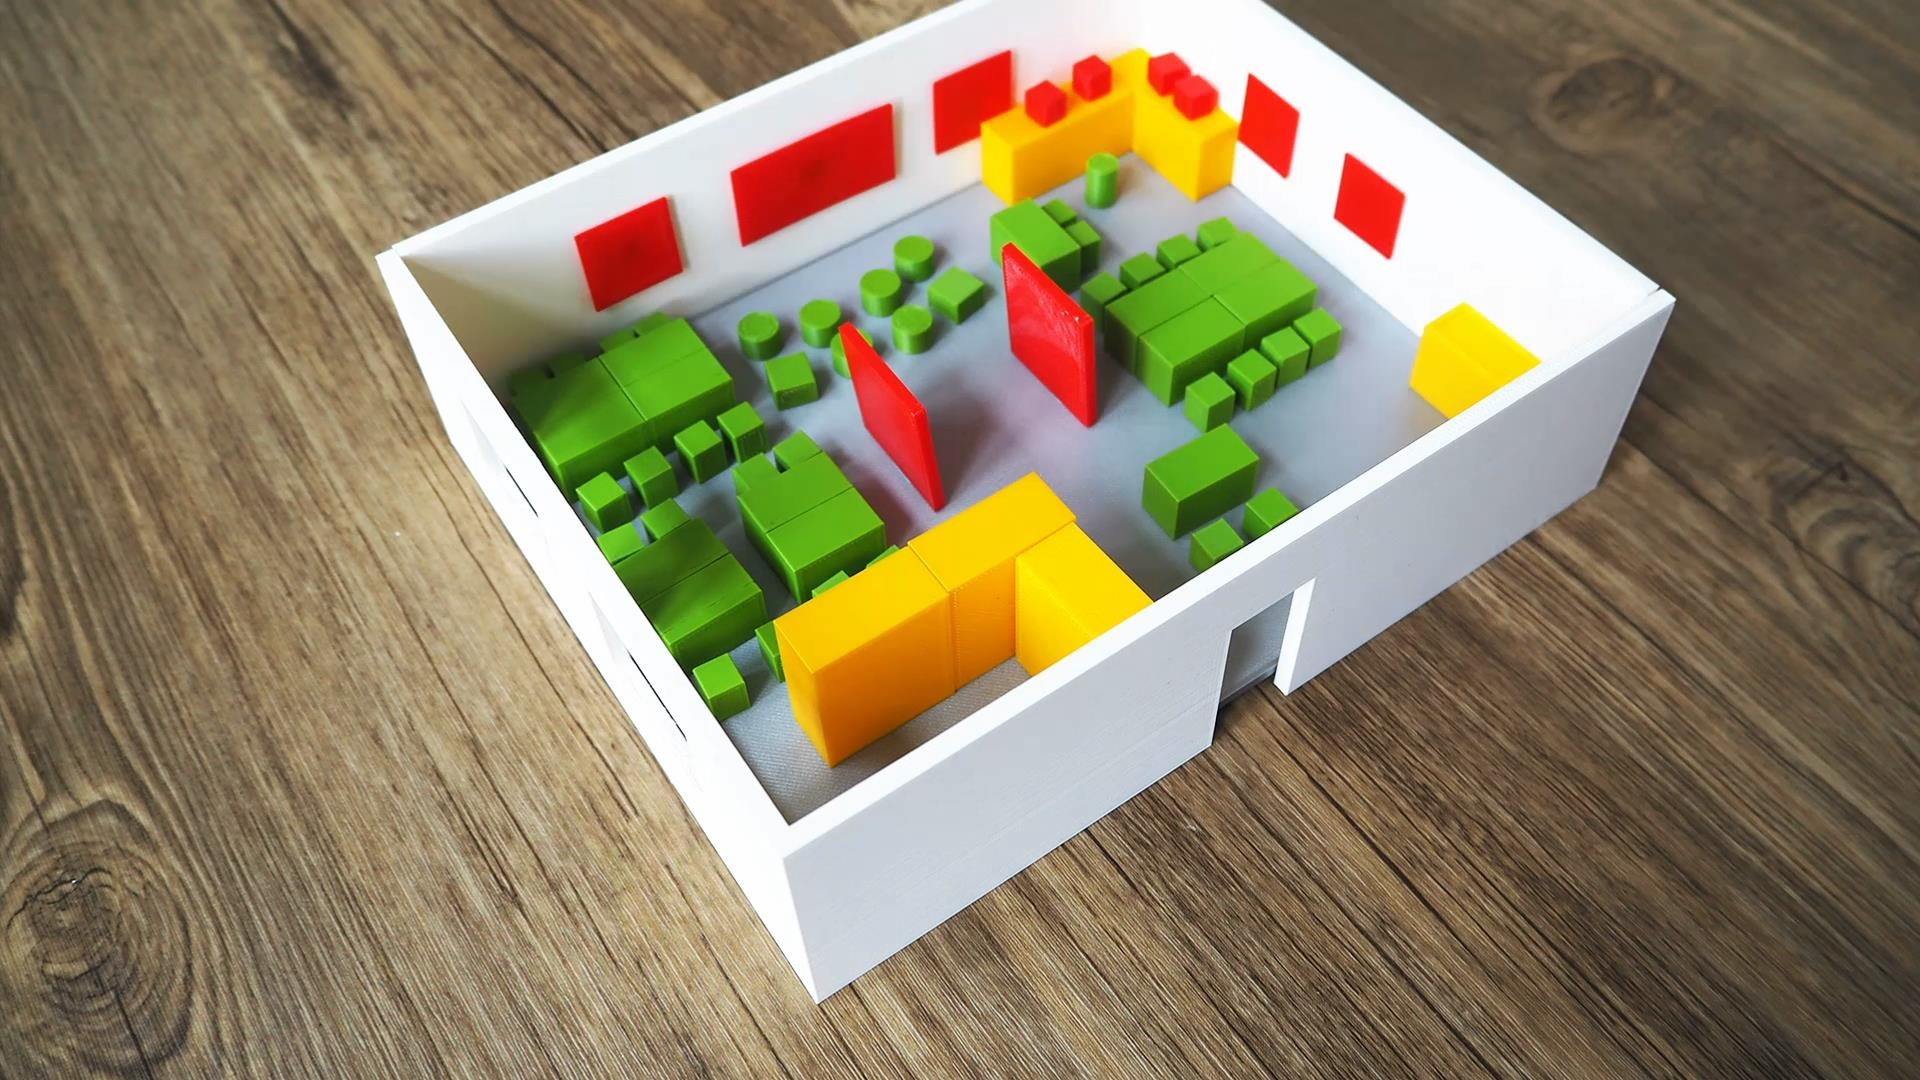 Engage your students in 3D printing as they redesign your classroom!